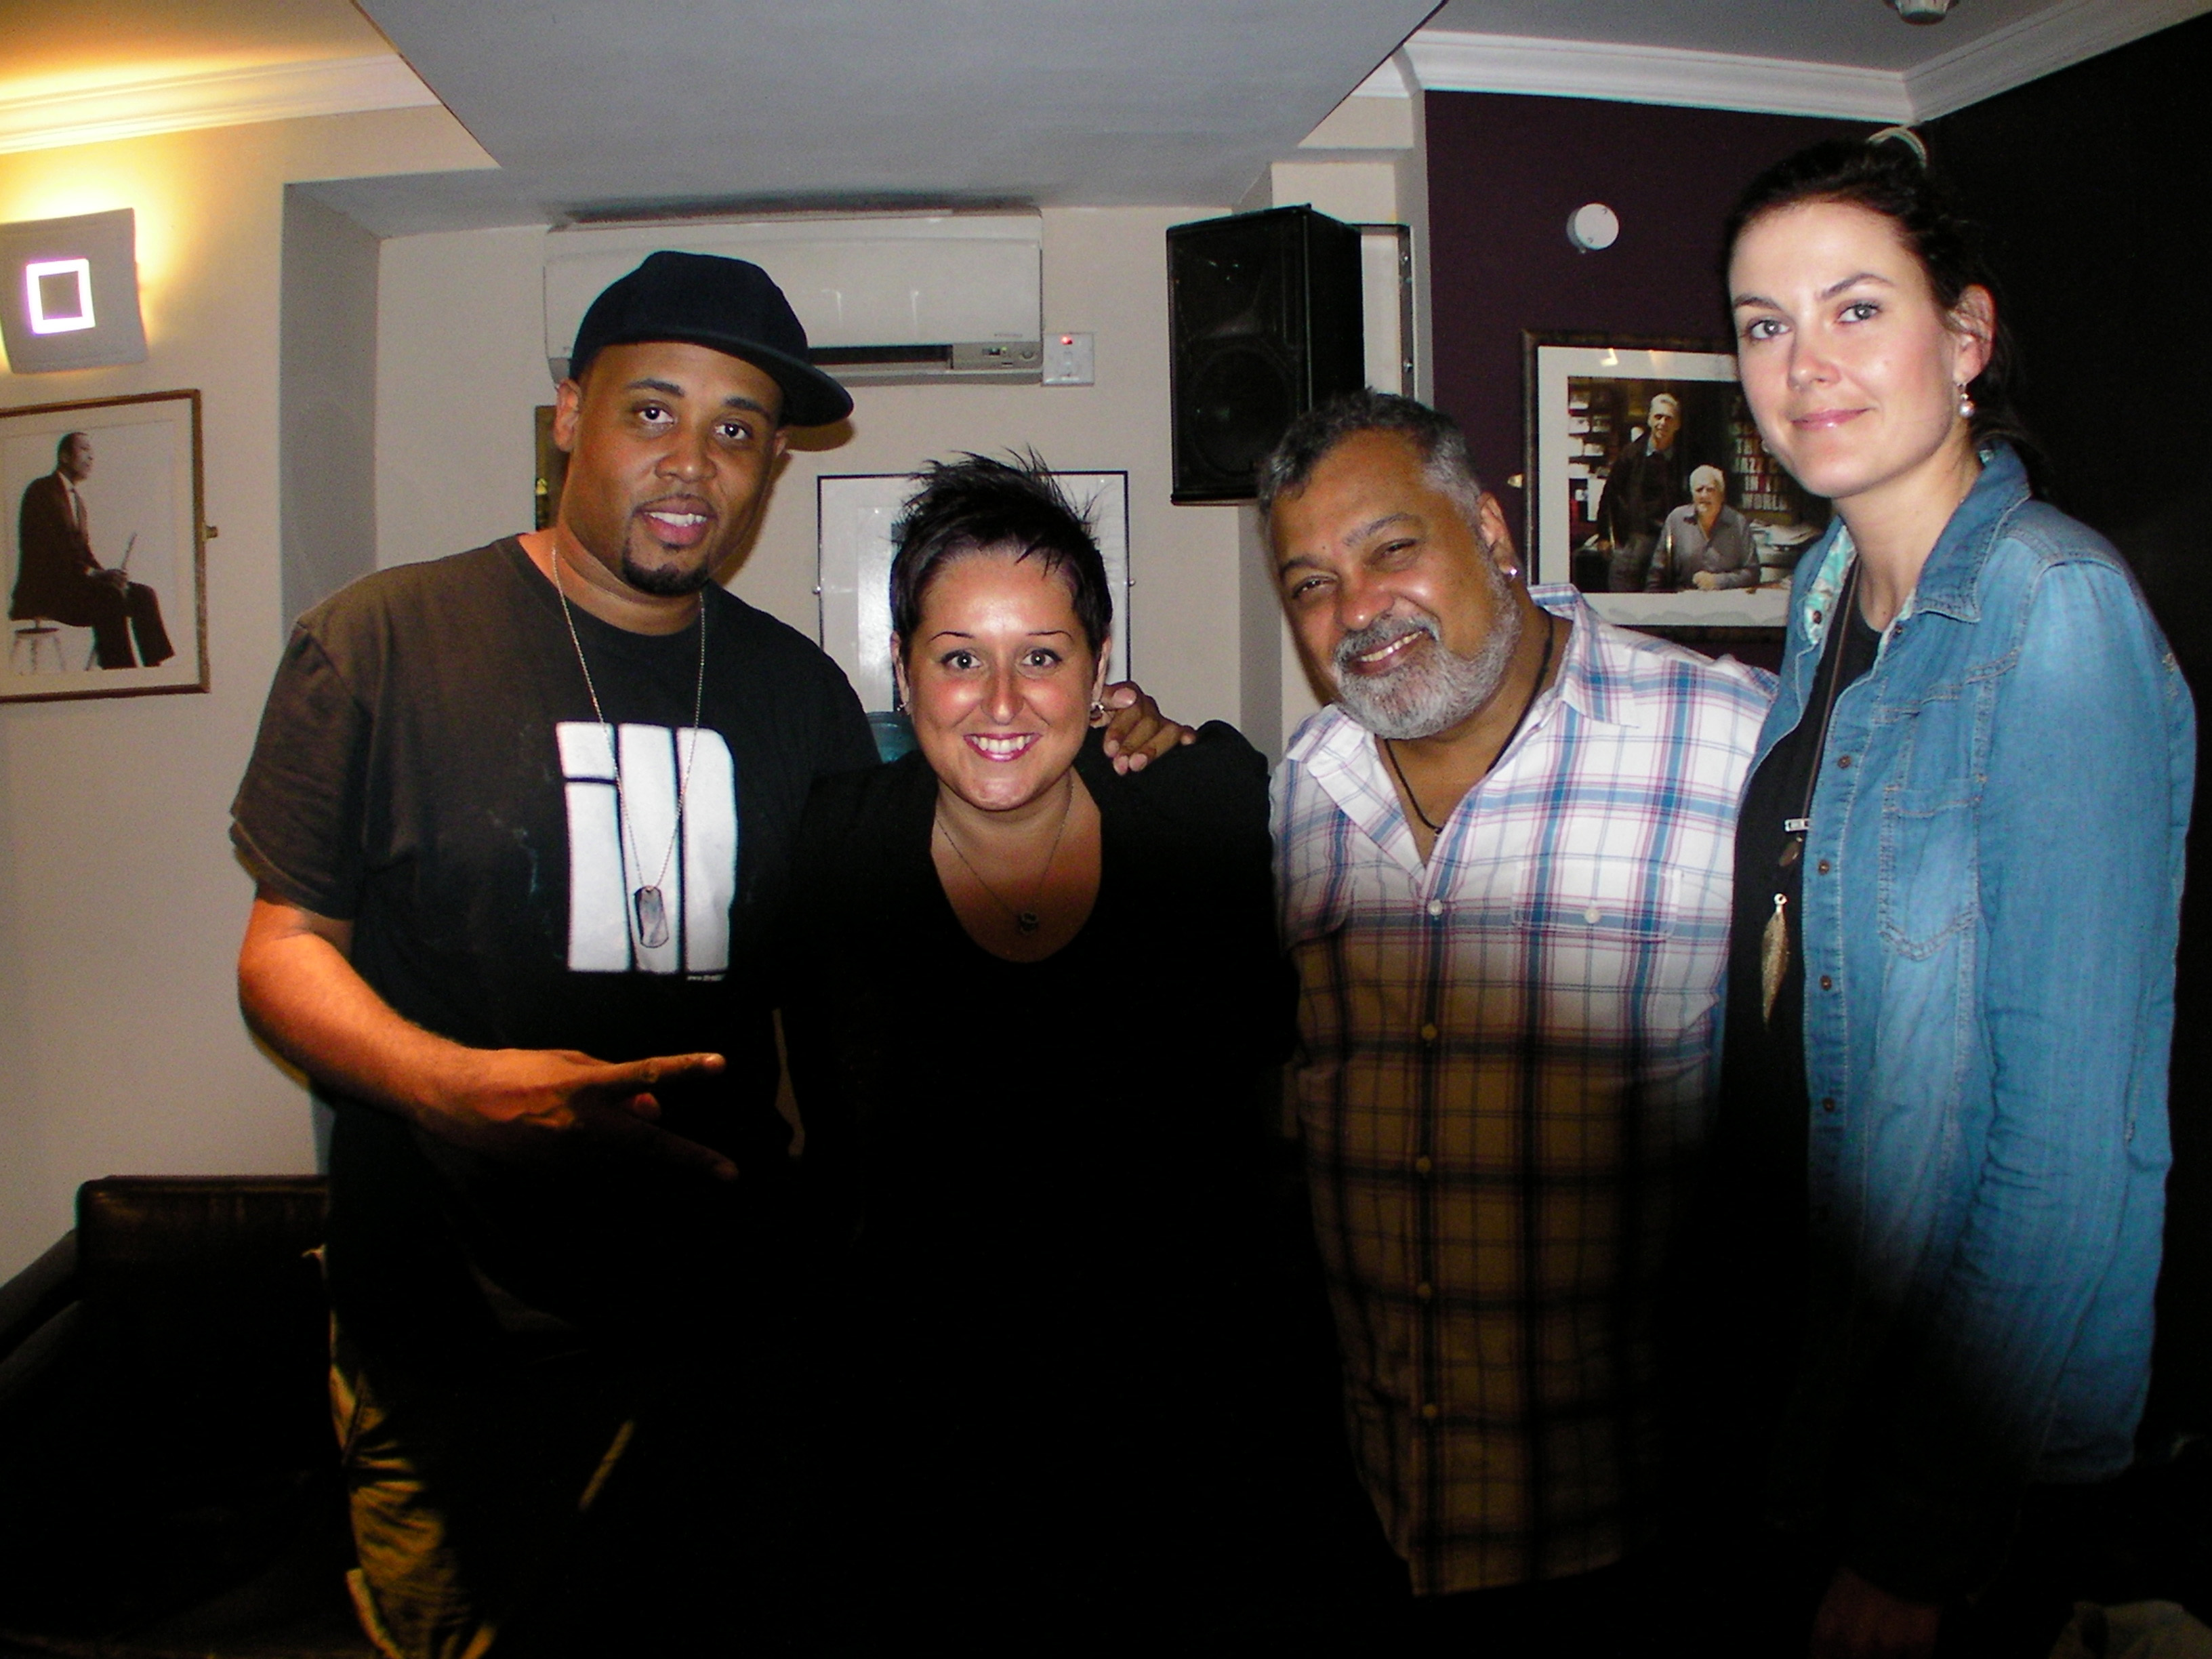 Interview with Bluey of Incognito